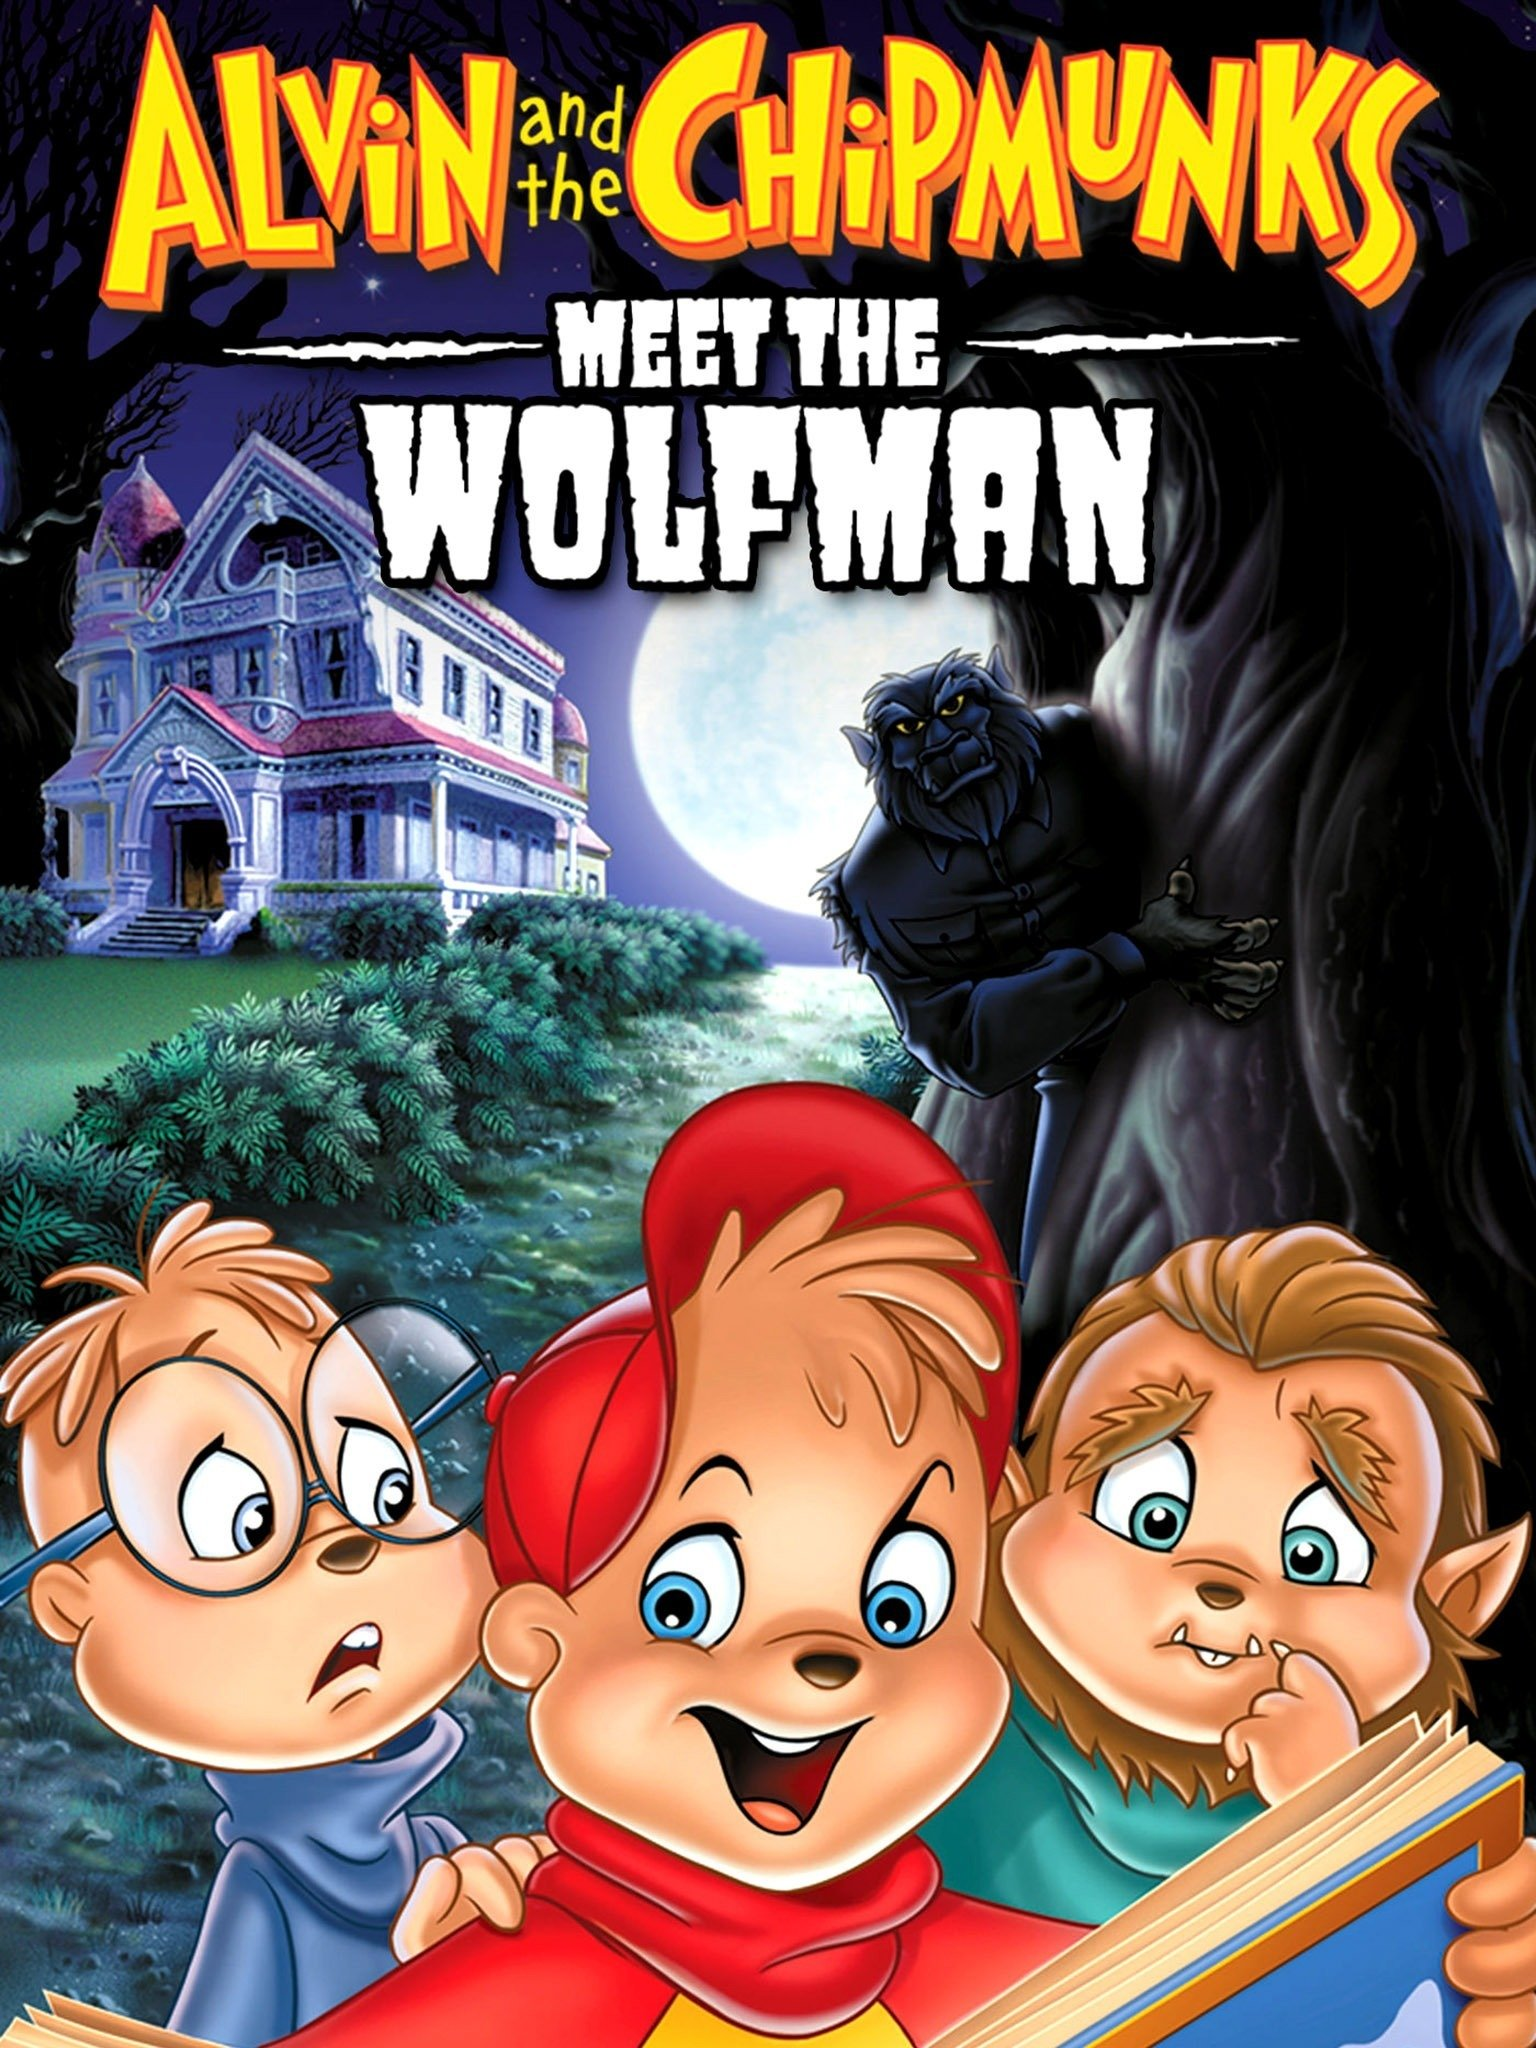 Alvin and the Chipmunks Meet the Wolfman (2000) English 720p BluRay 600MB Download